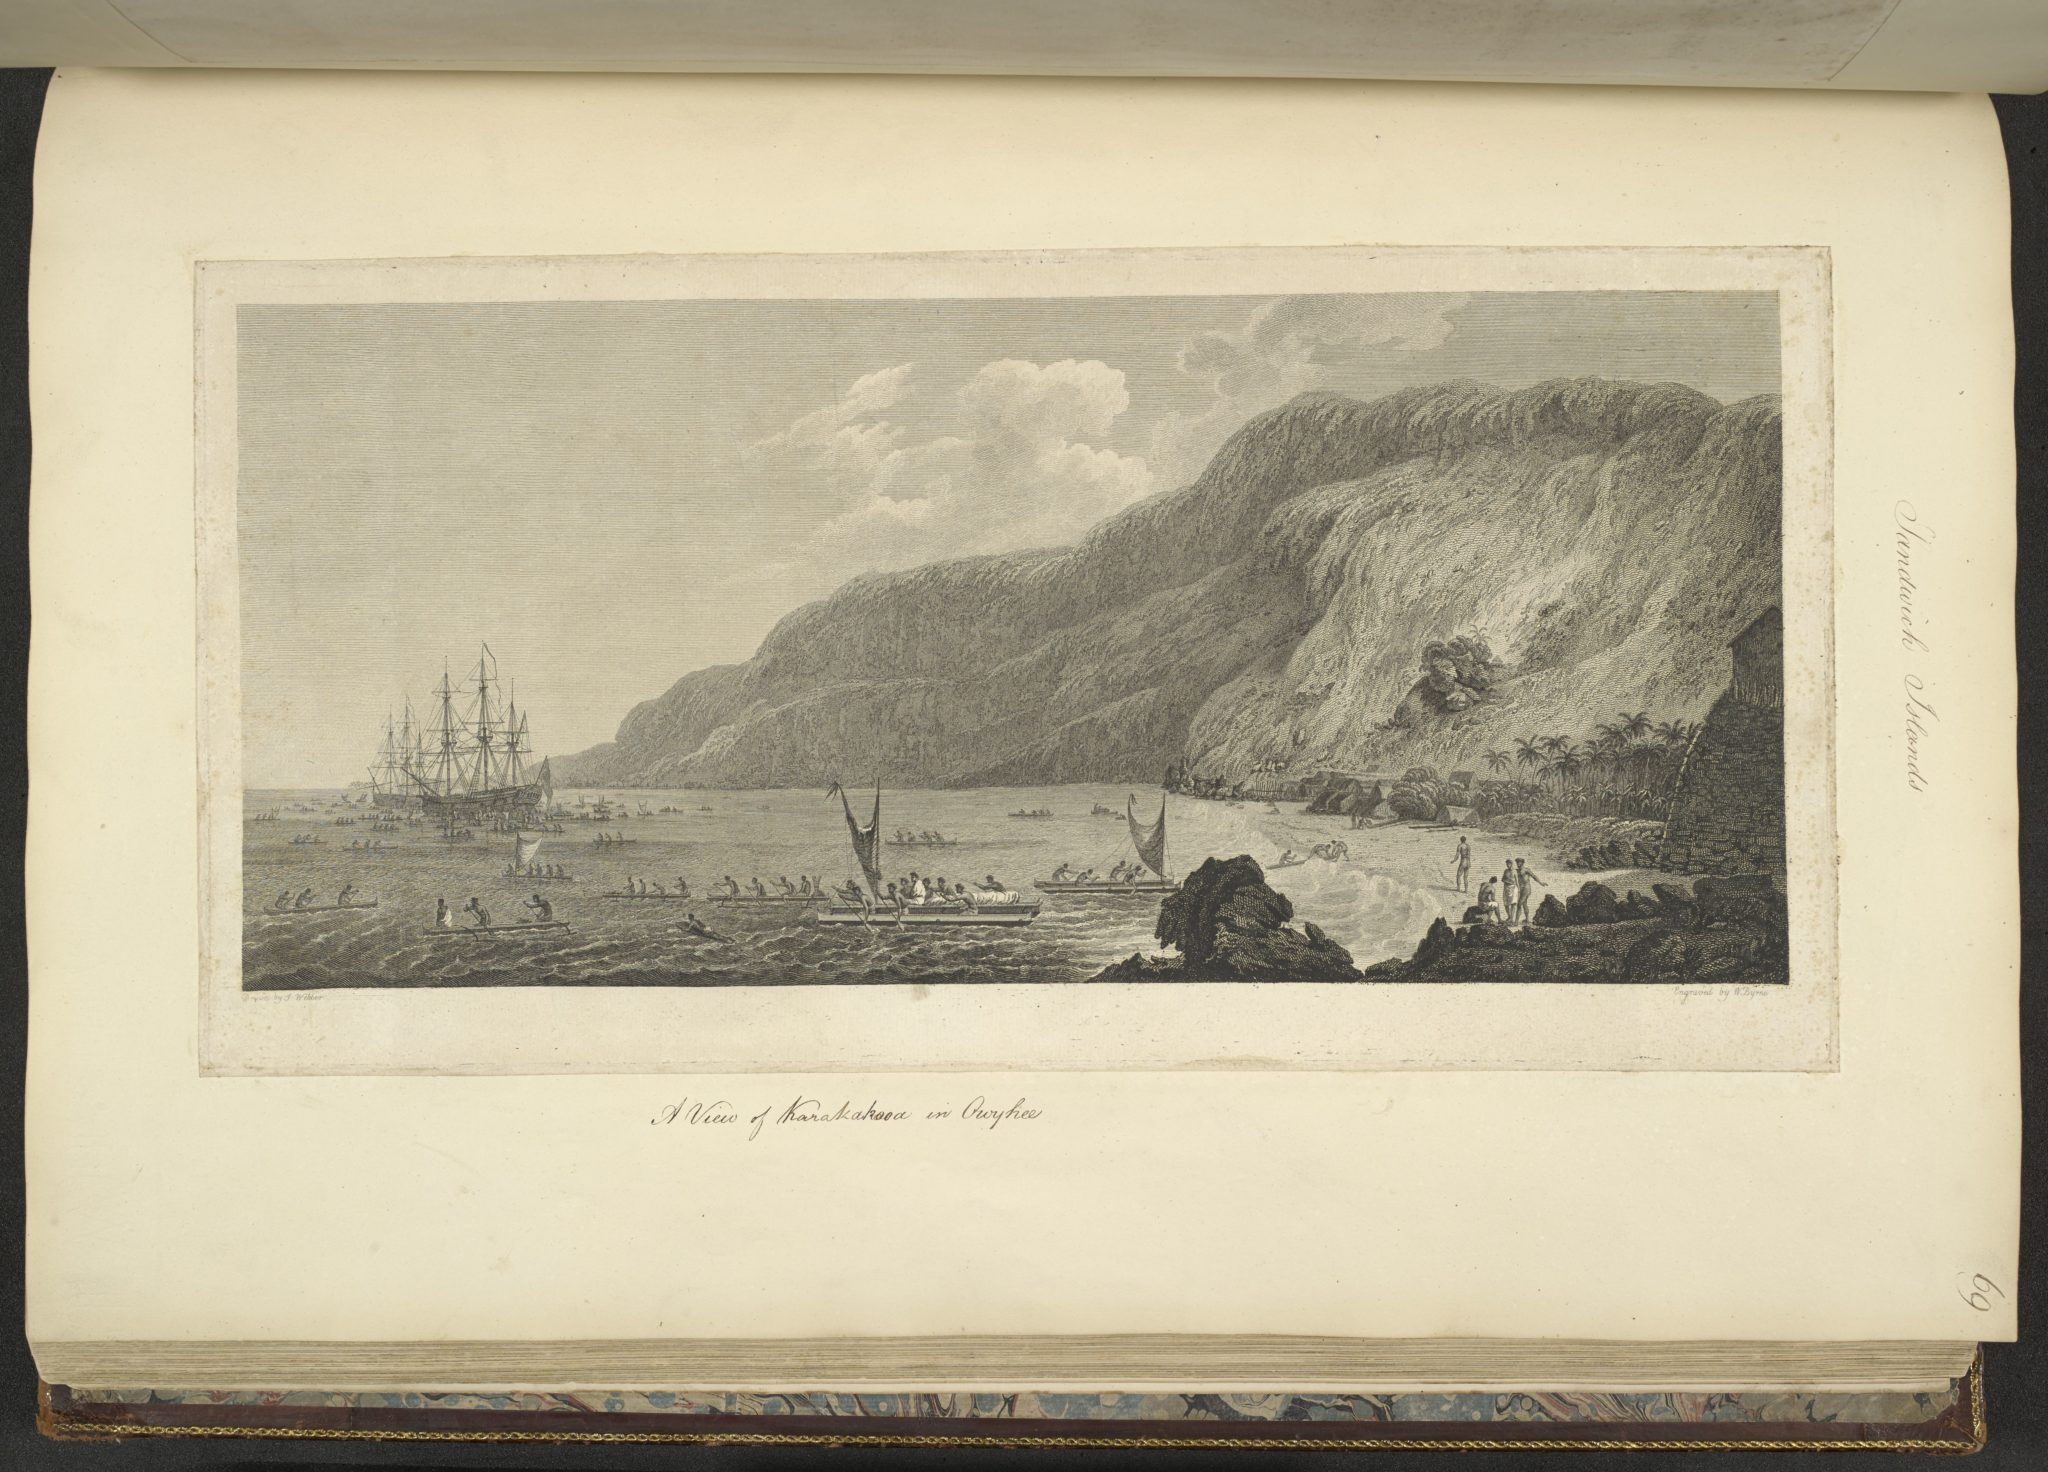 """""""View of Karakakooa in Owhyhee,"""" drawn by John Webber and engraved by W. Byrne. The drawing is part of the """"James Cook: The Voyages"""" exhibit at The British Library in London."""